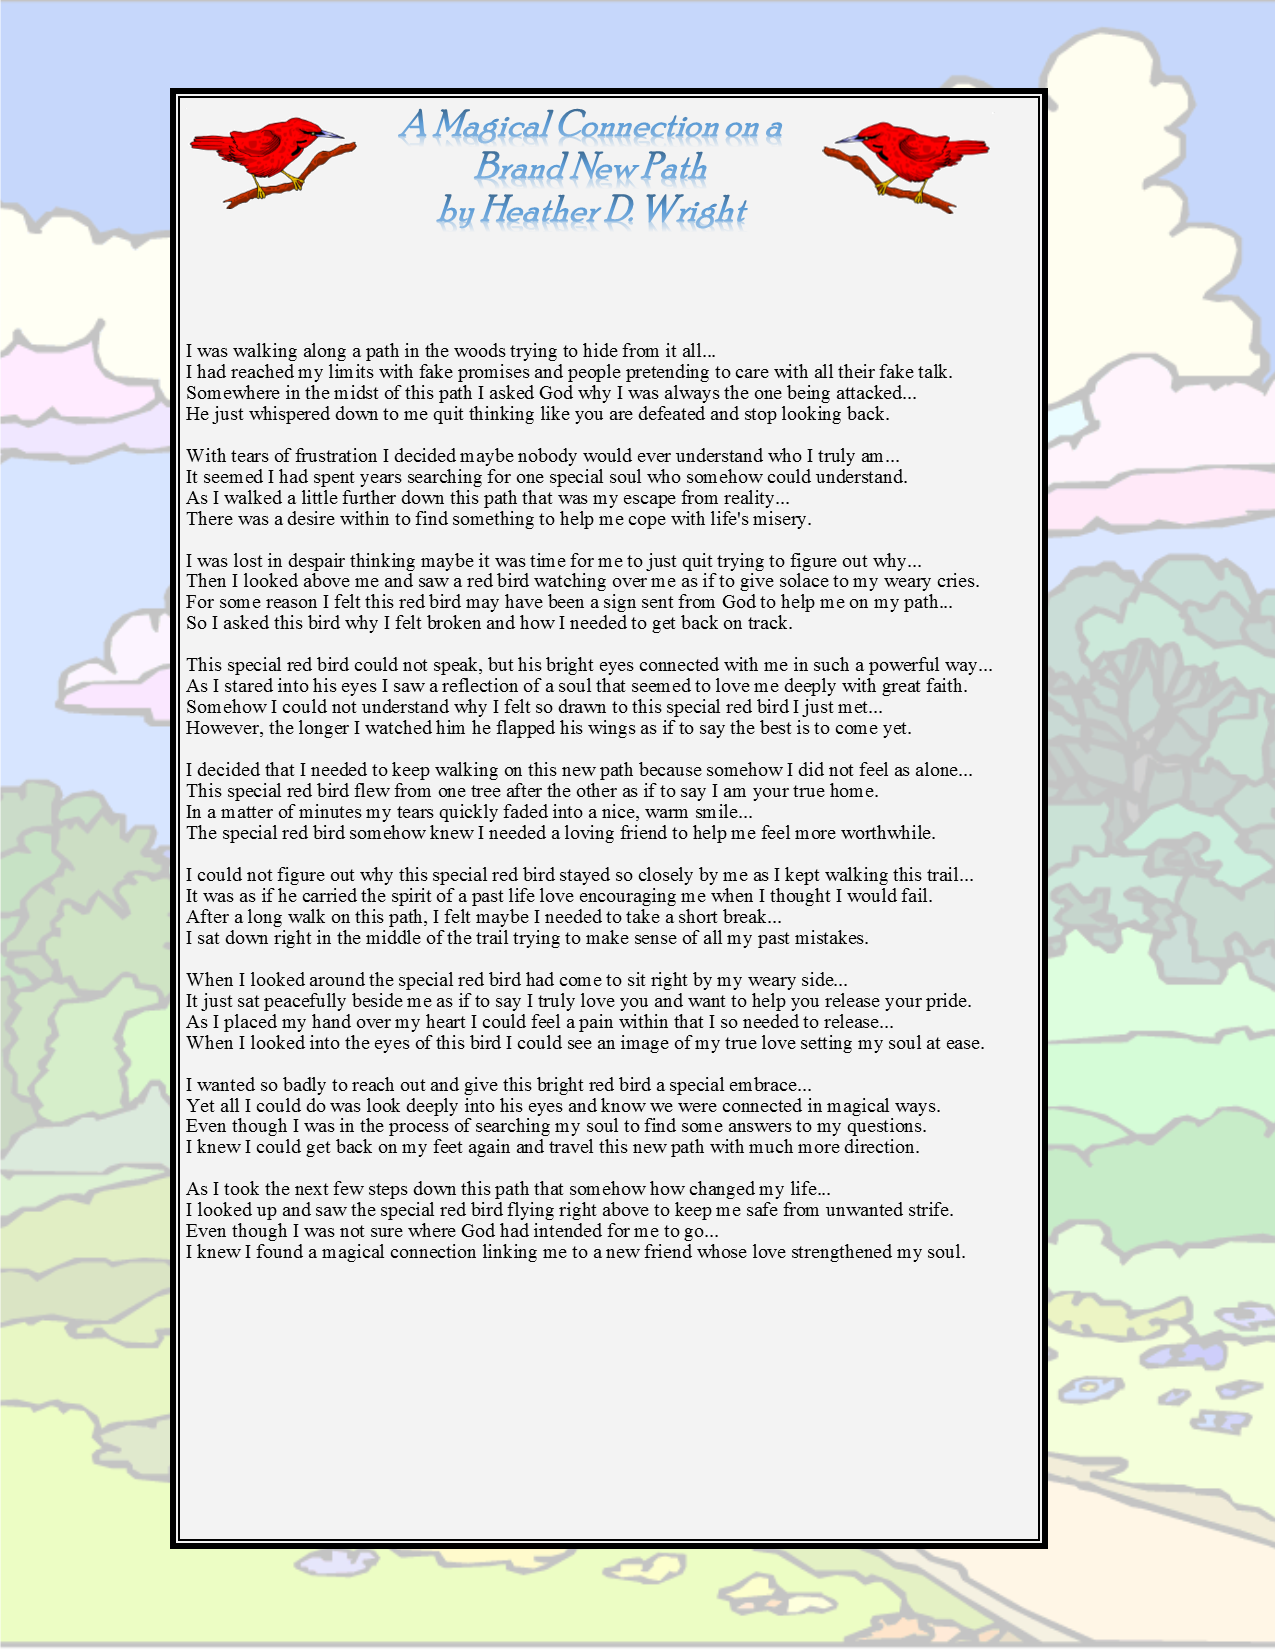 A Magical Connection on a Brand New Path - Printable Digital Download